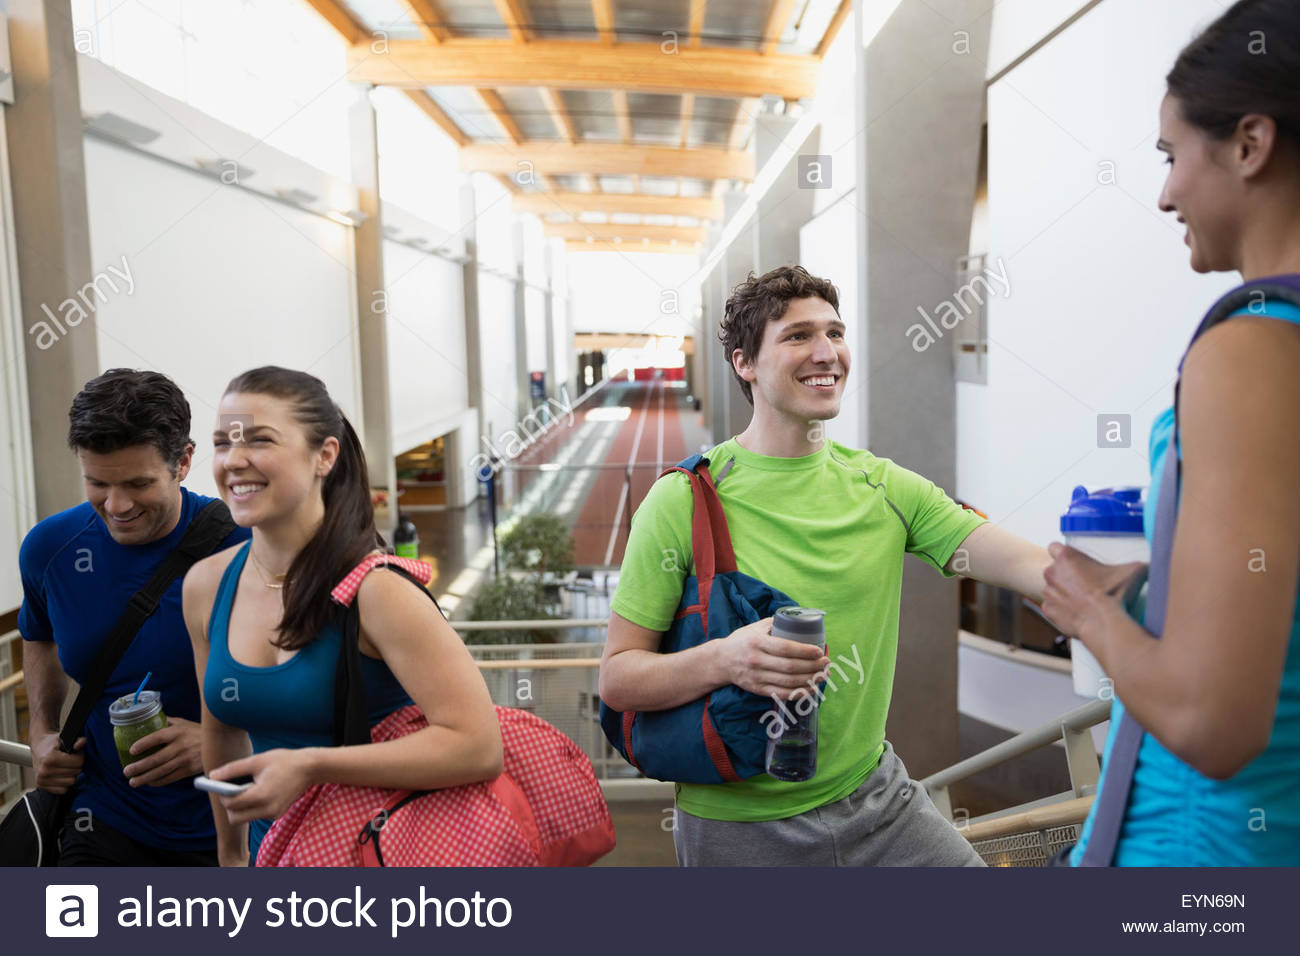 Friends talking at gym - Stock Image